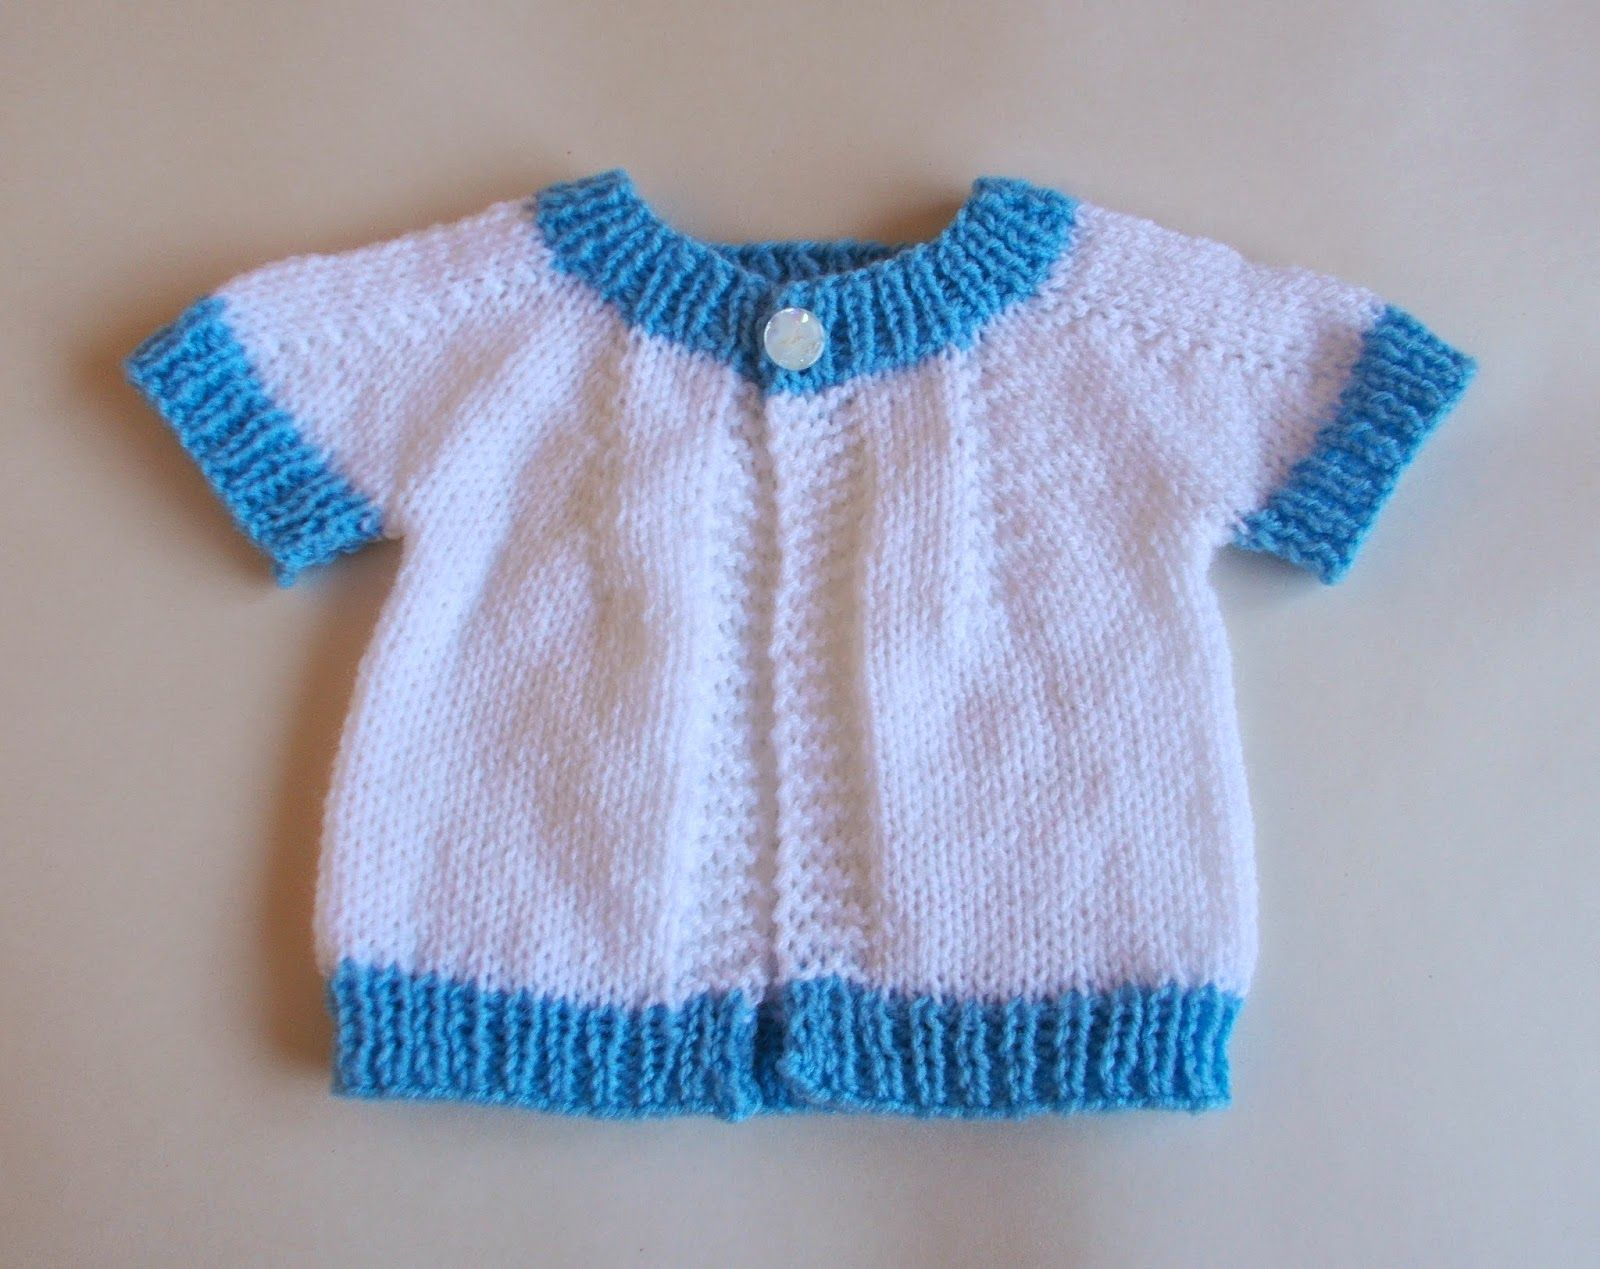 Knitting Jacket For Girl : Marianna s lazy daisy days boy or girl top down baby jacket